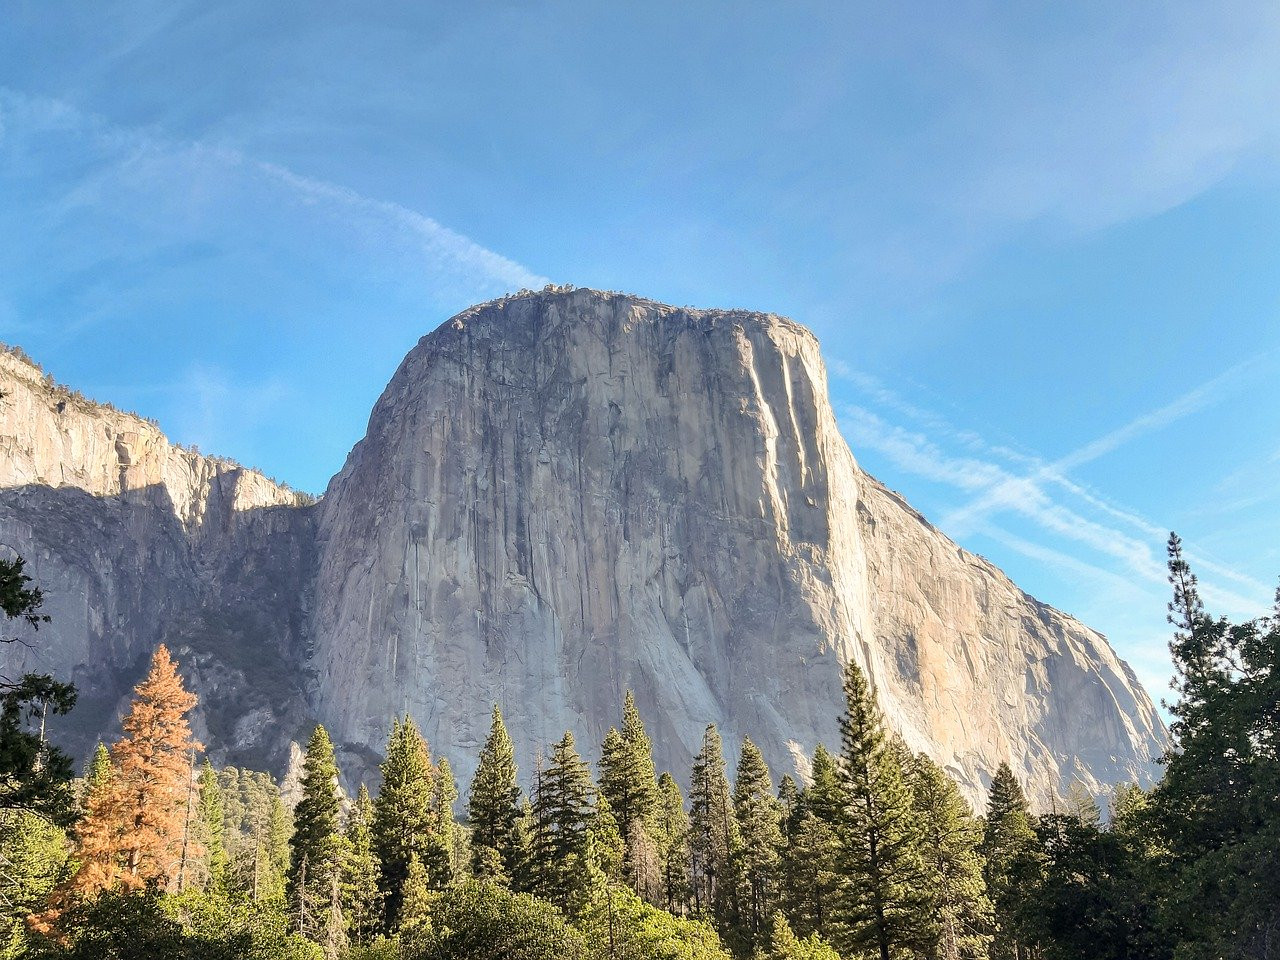 Guided Hiking Through Sequoia, Kings Canyon and Yosemite